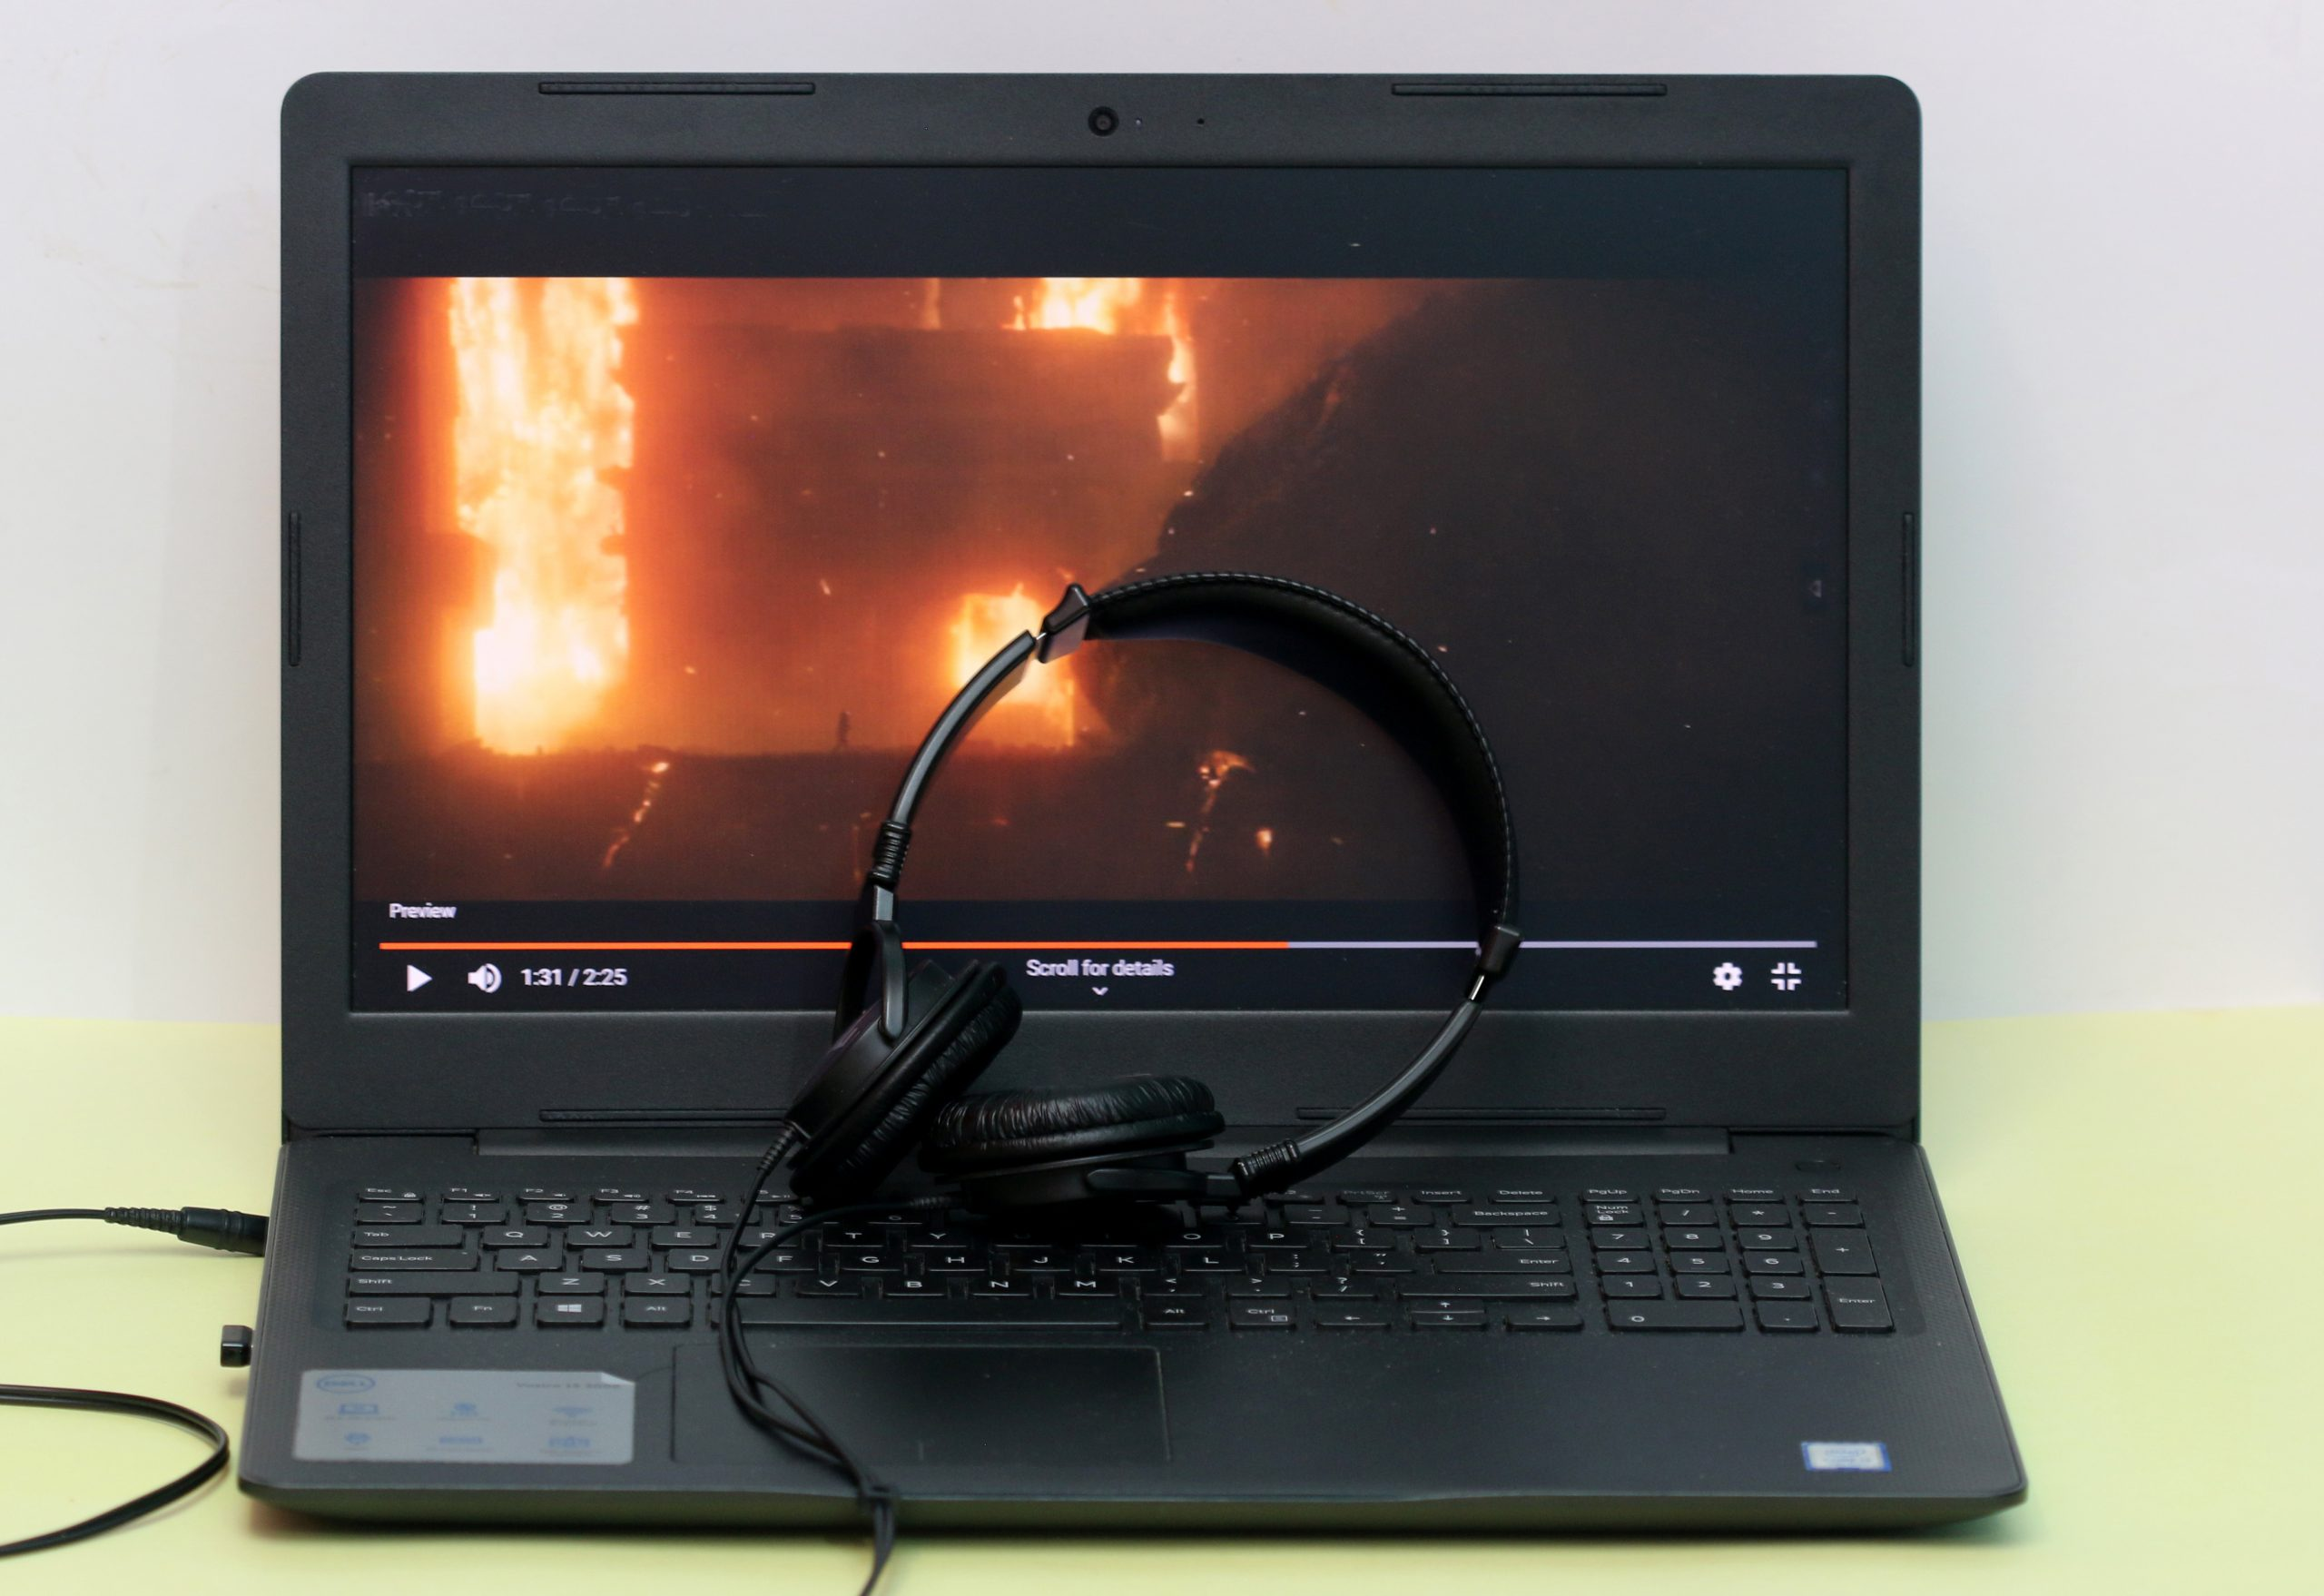 Watching a movie in laptop